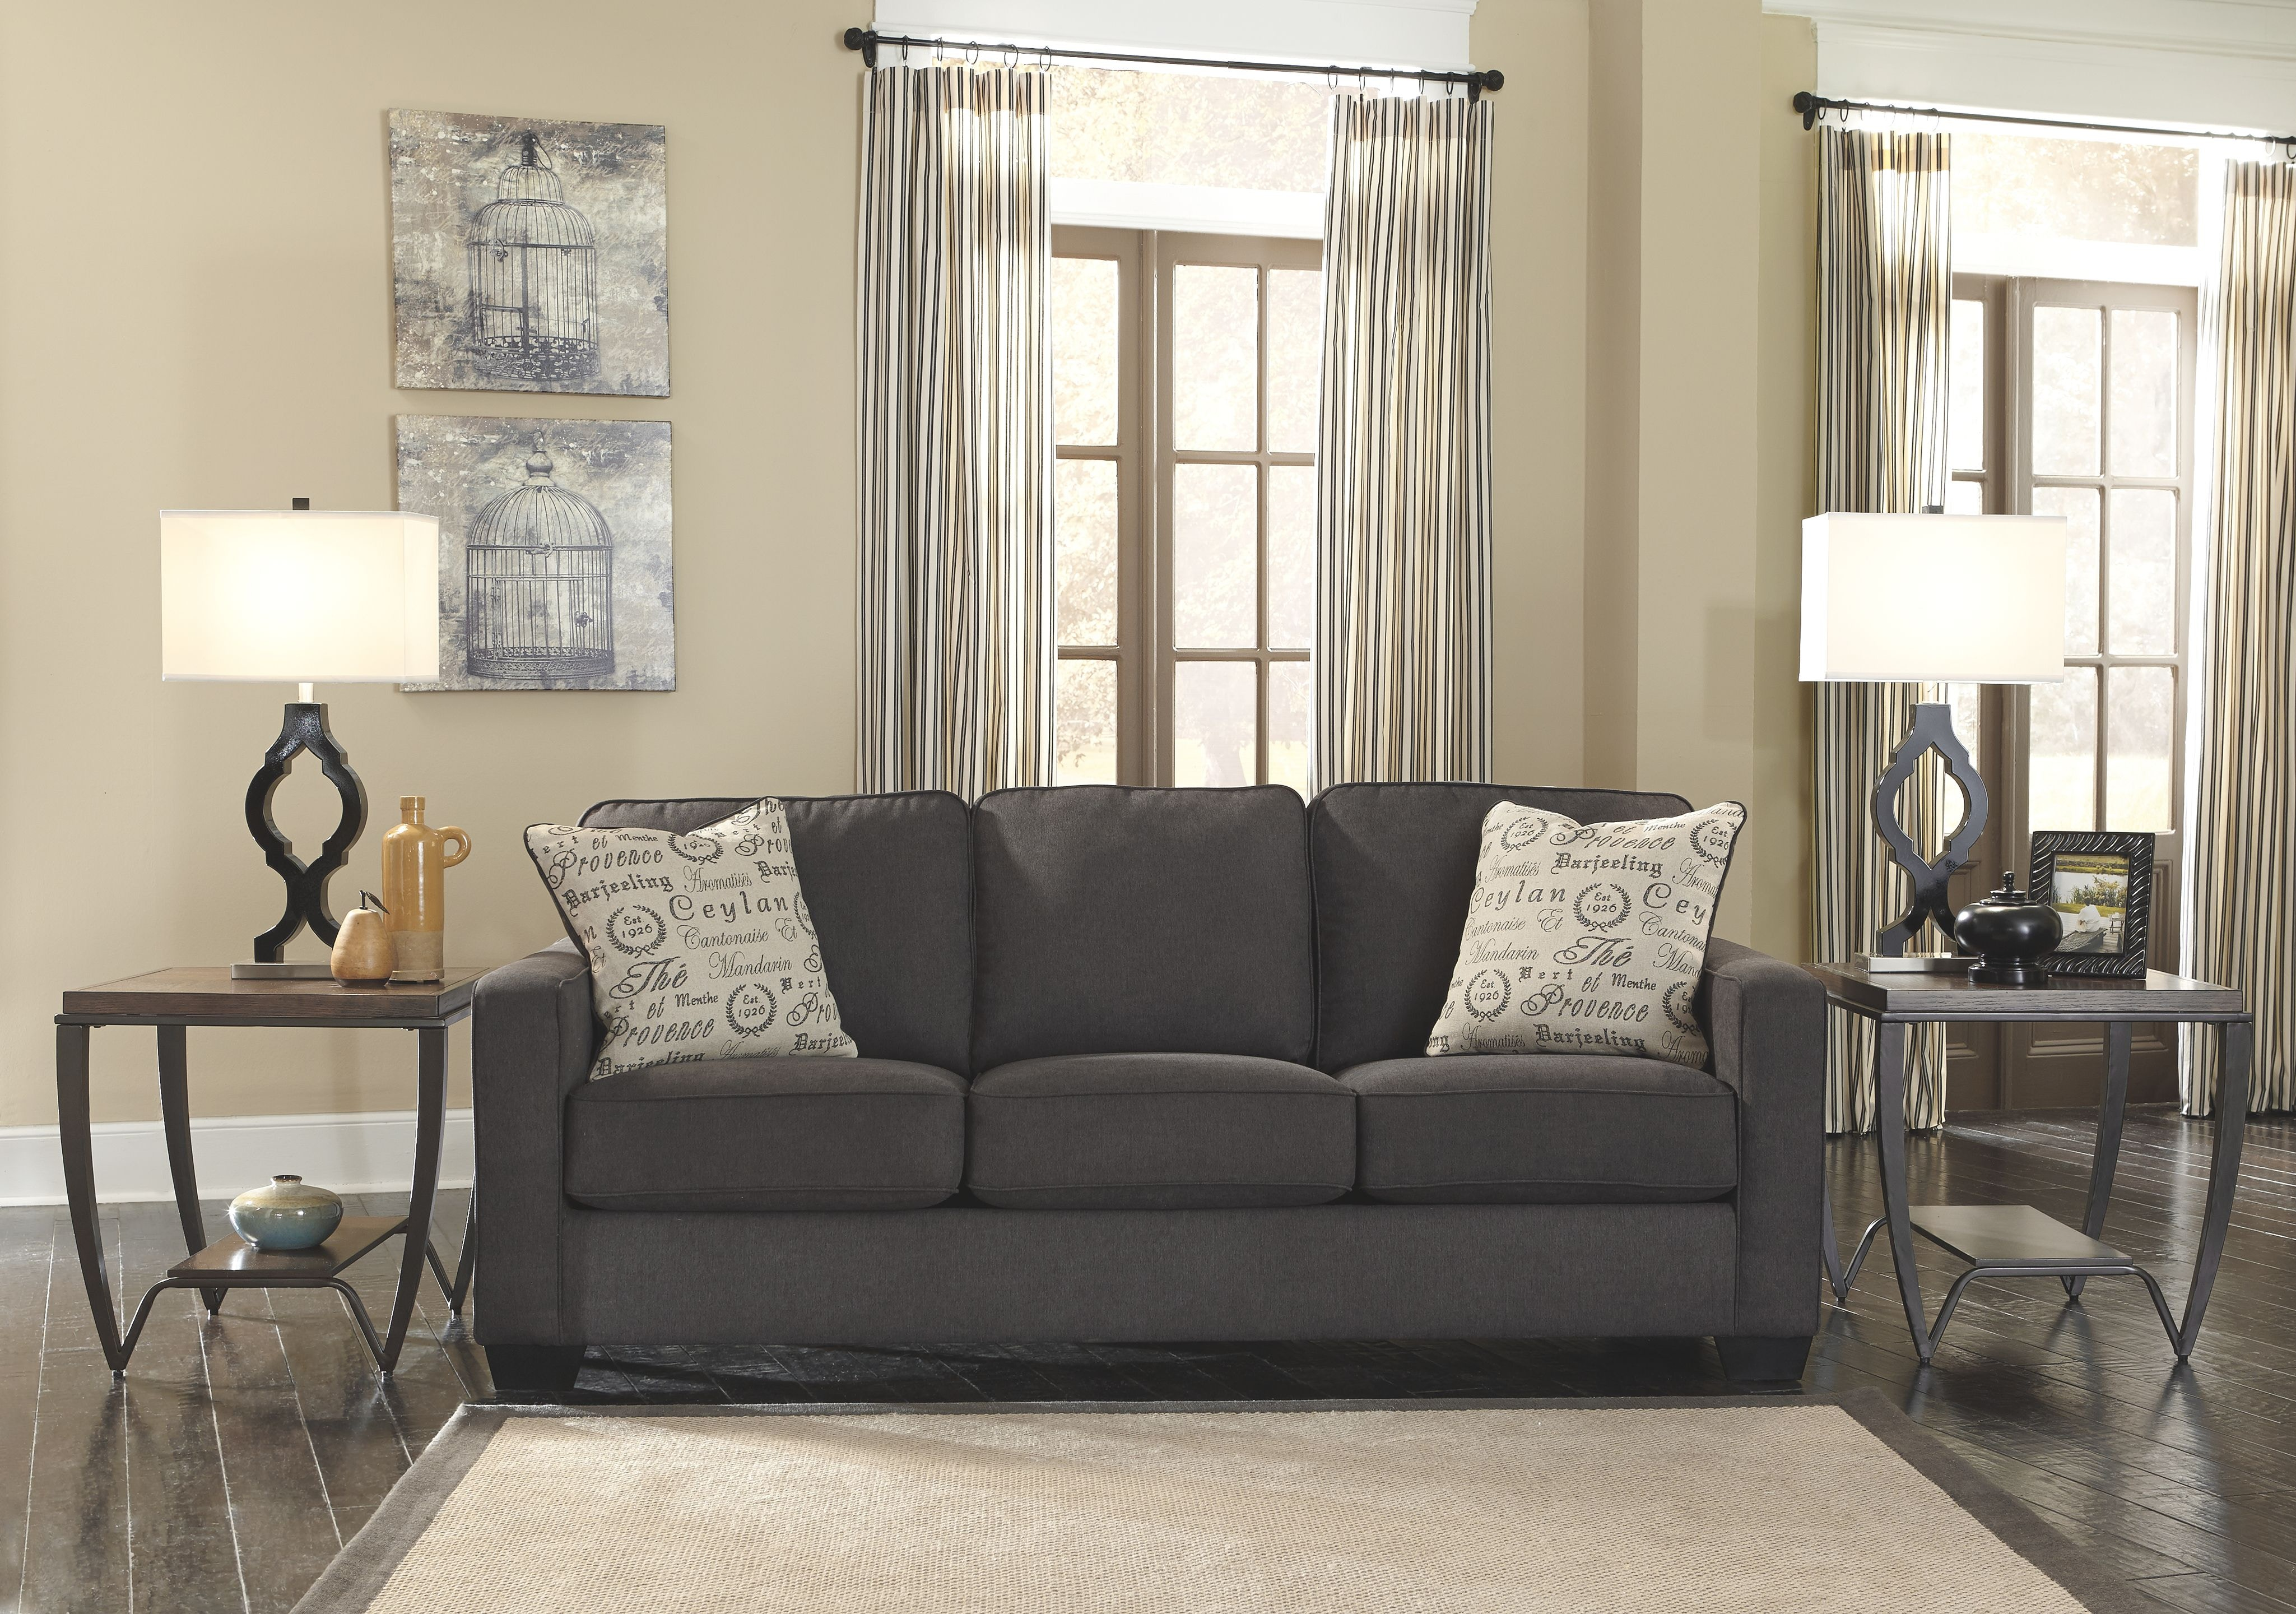 Signature Design by Ashley Living Room Sofa 1660138   Robinson s     Signature Design by Ashley Sofa 1660138